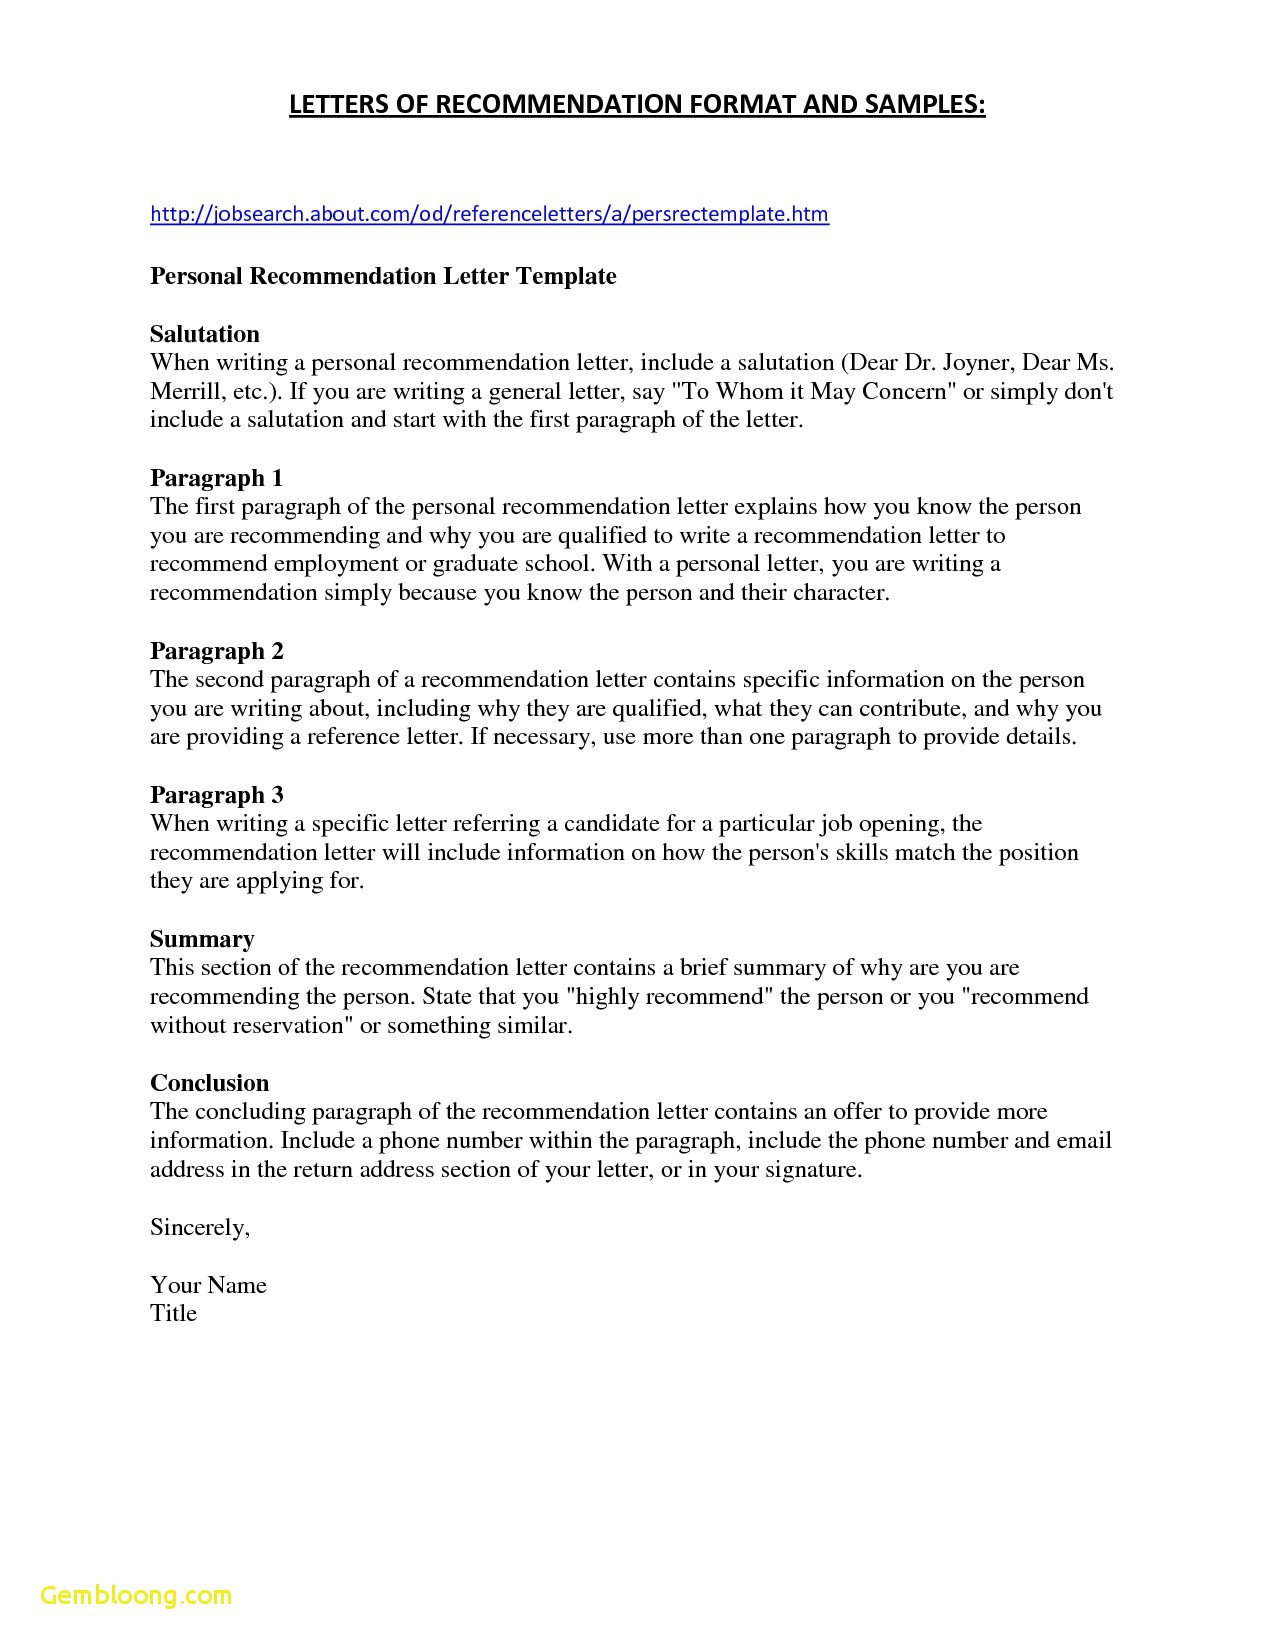 downloadable letter of recommendation template example-Letter Re mendation Template for College Admission New College Admission Resume Sample Download Sample Reference Letter 6-o